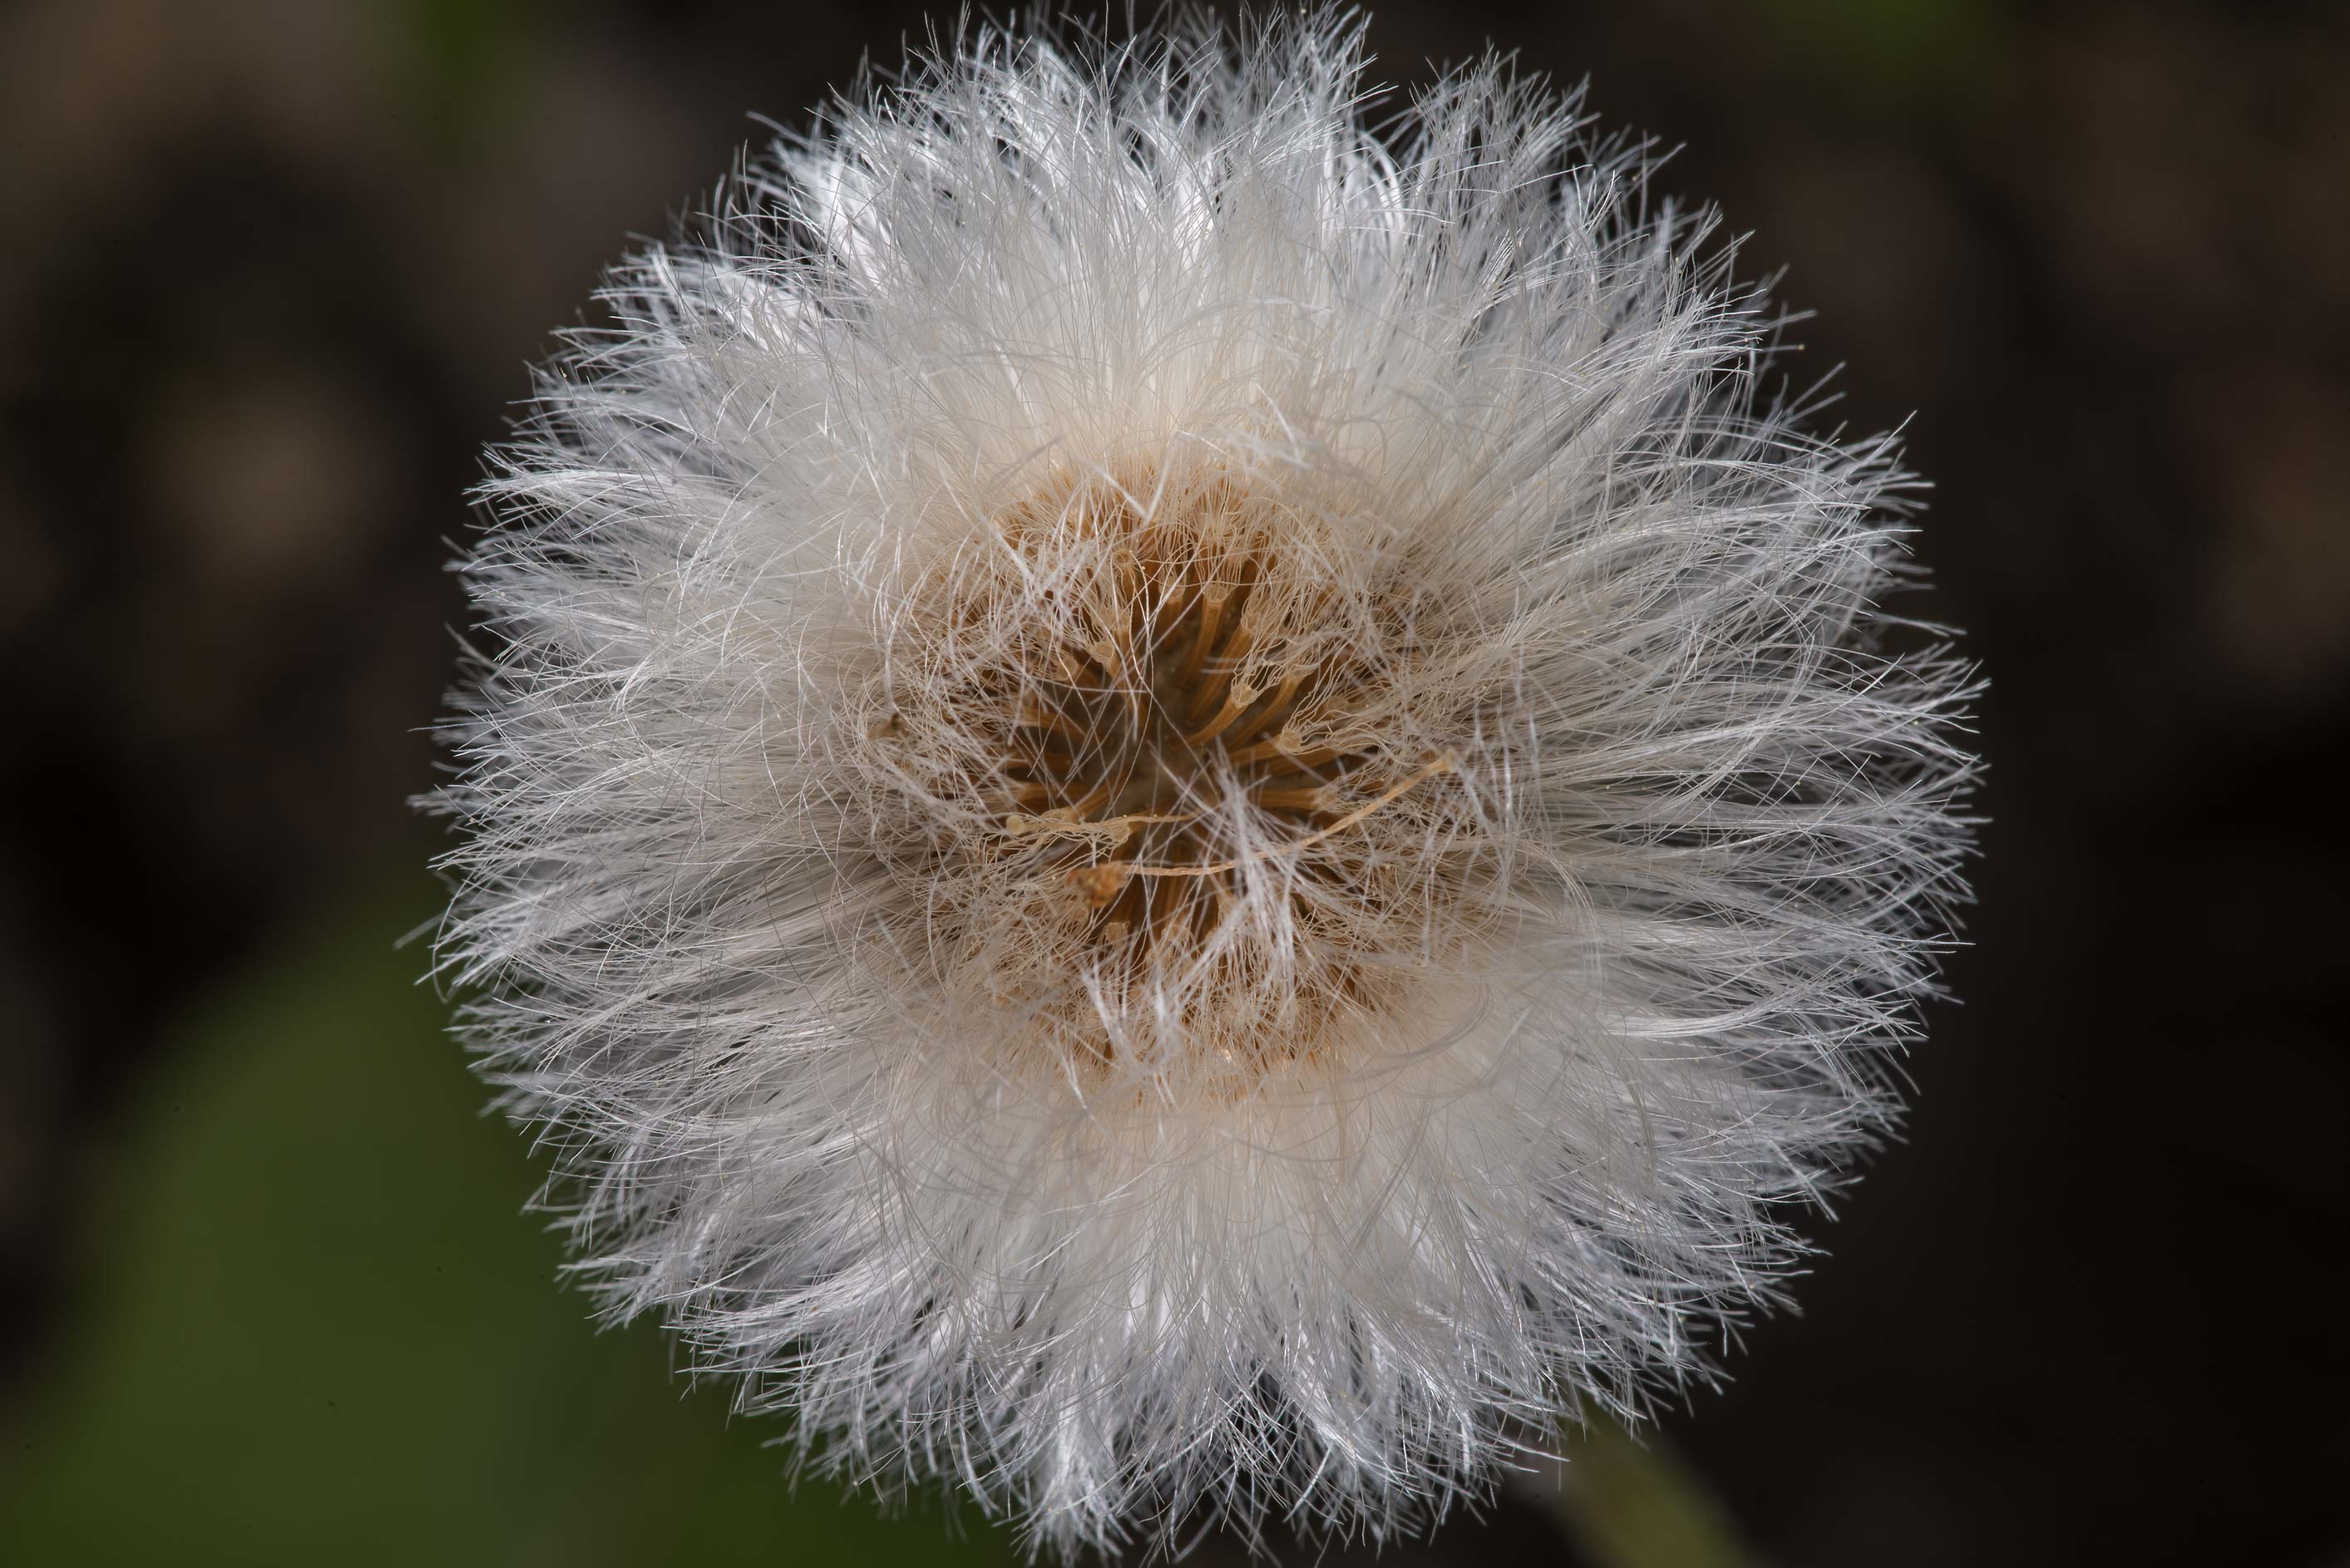 Seed head of coltsfoot (Tussilago farfara...west from St.Petersburg, Russia